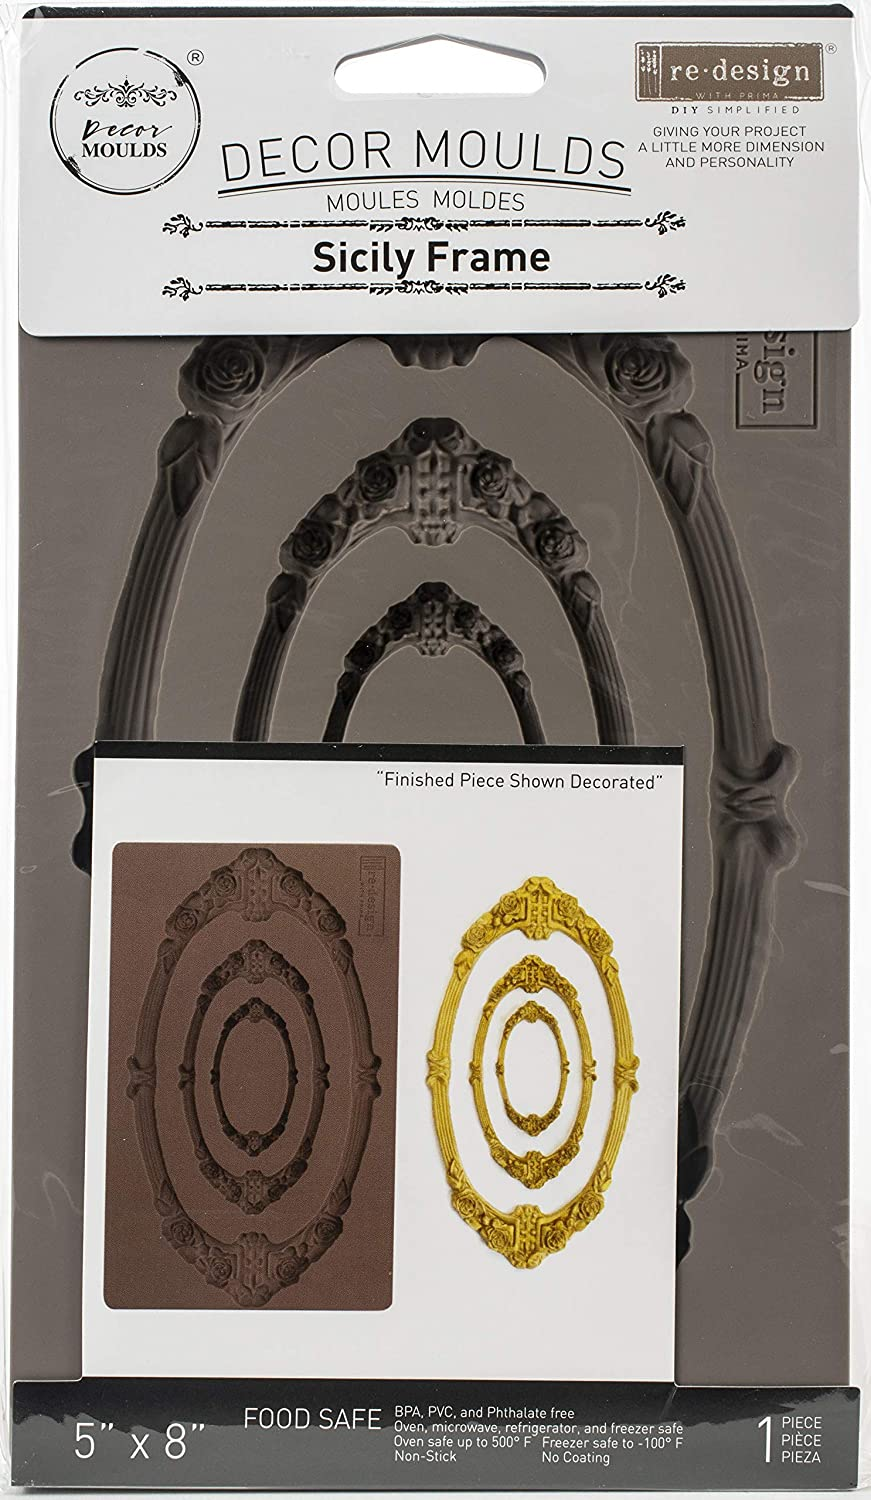 PRIMA MARKETING INC Redesign Mould 5X8 FRM, us:one size, Sicily Frame